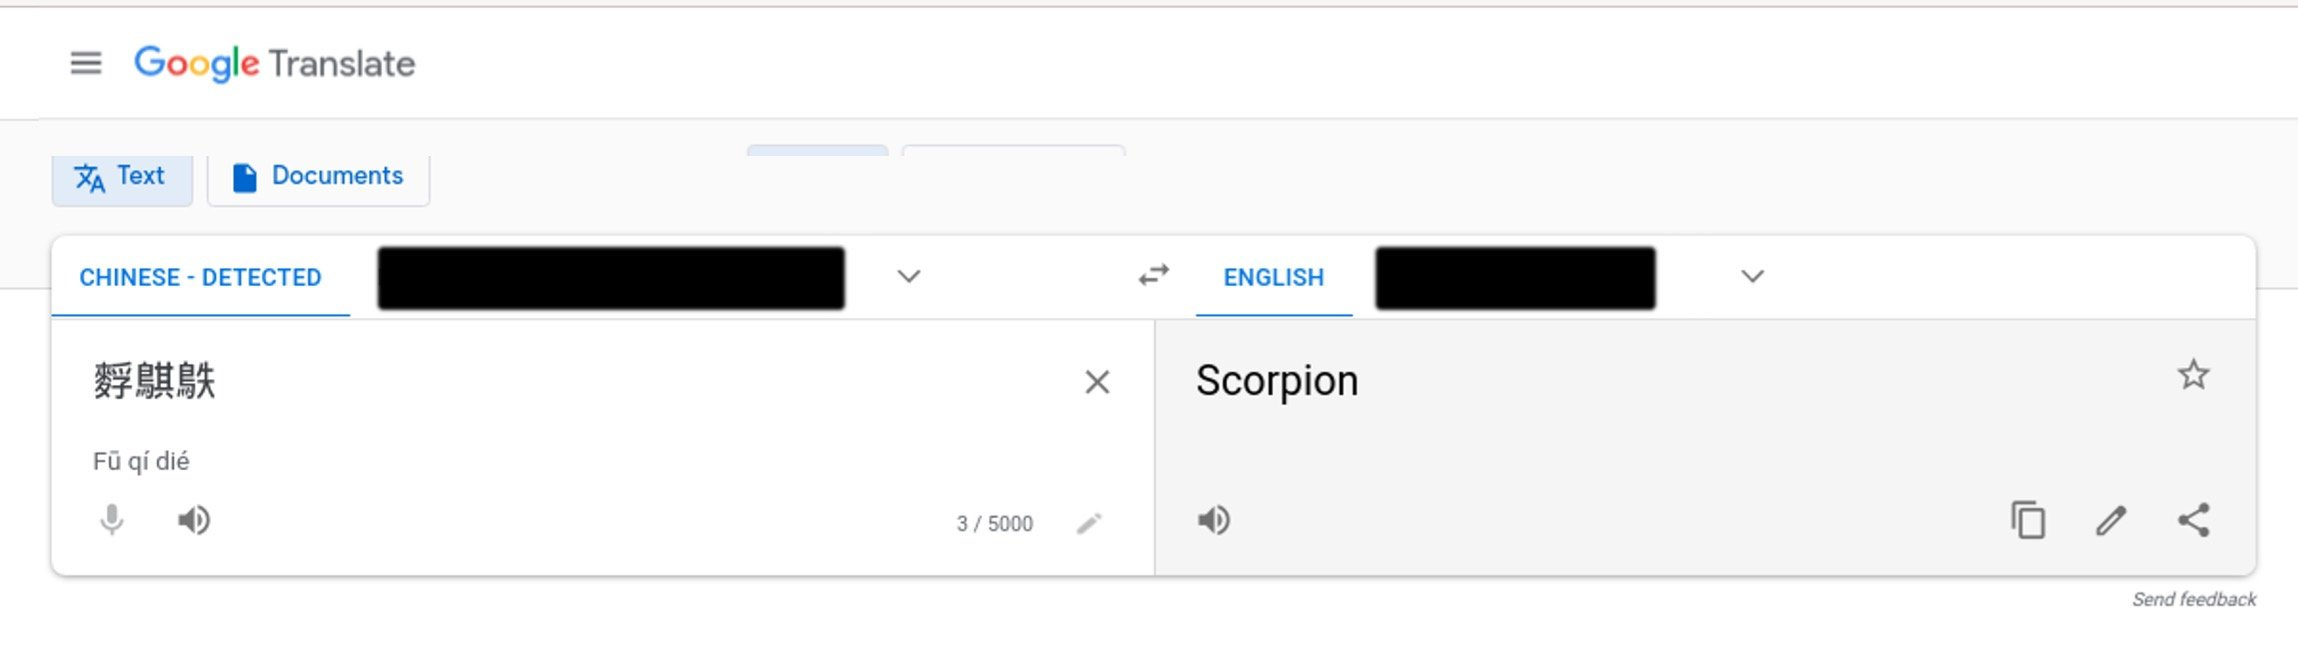 Google Translate showing suspicious HTTP user agent translation